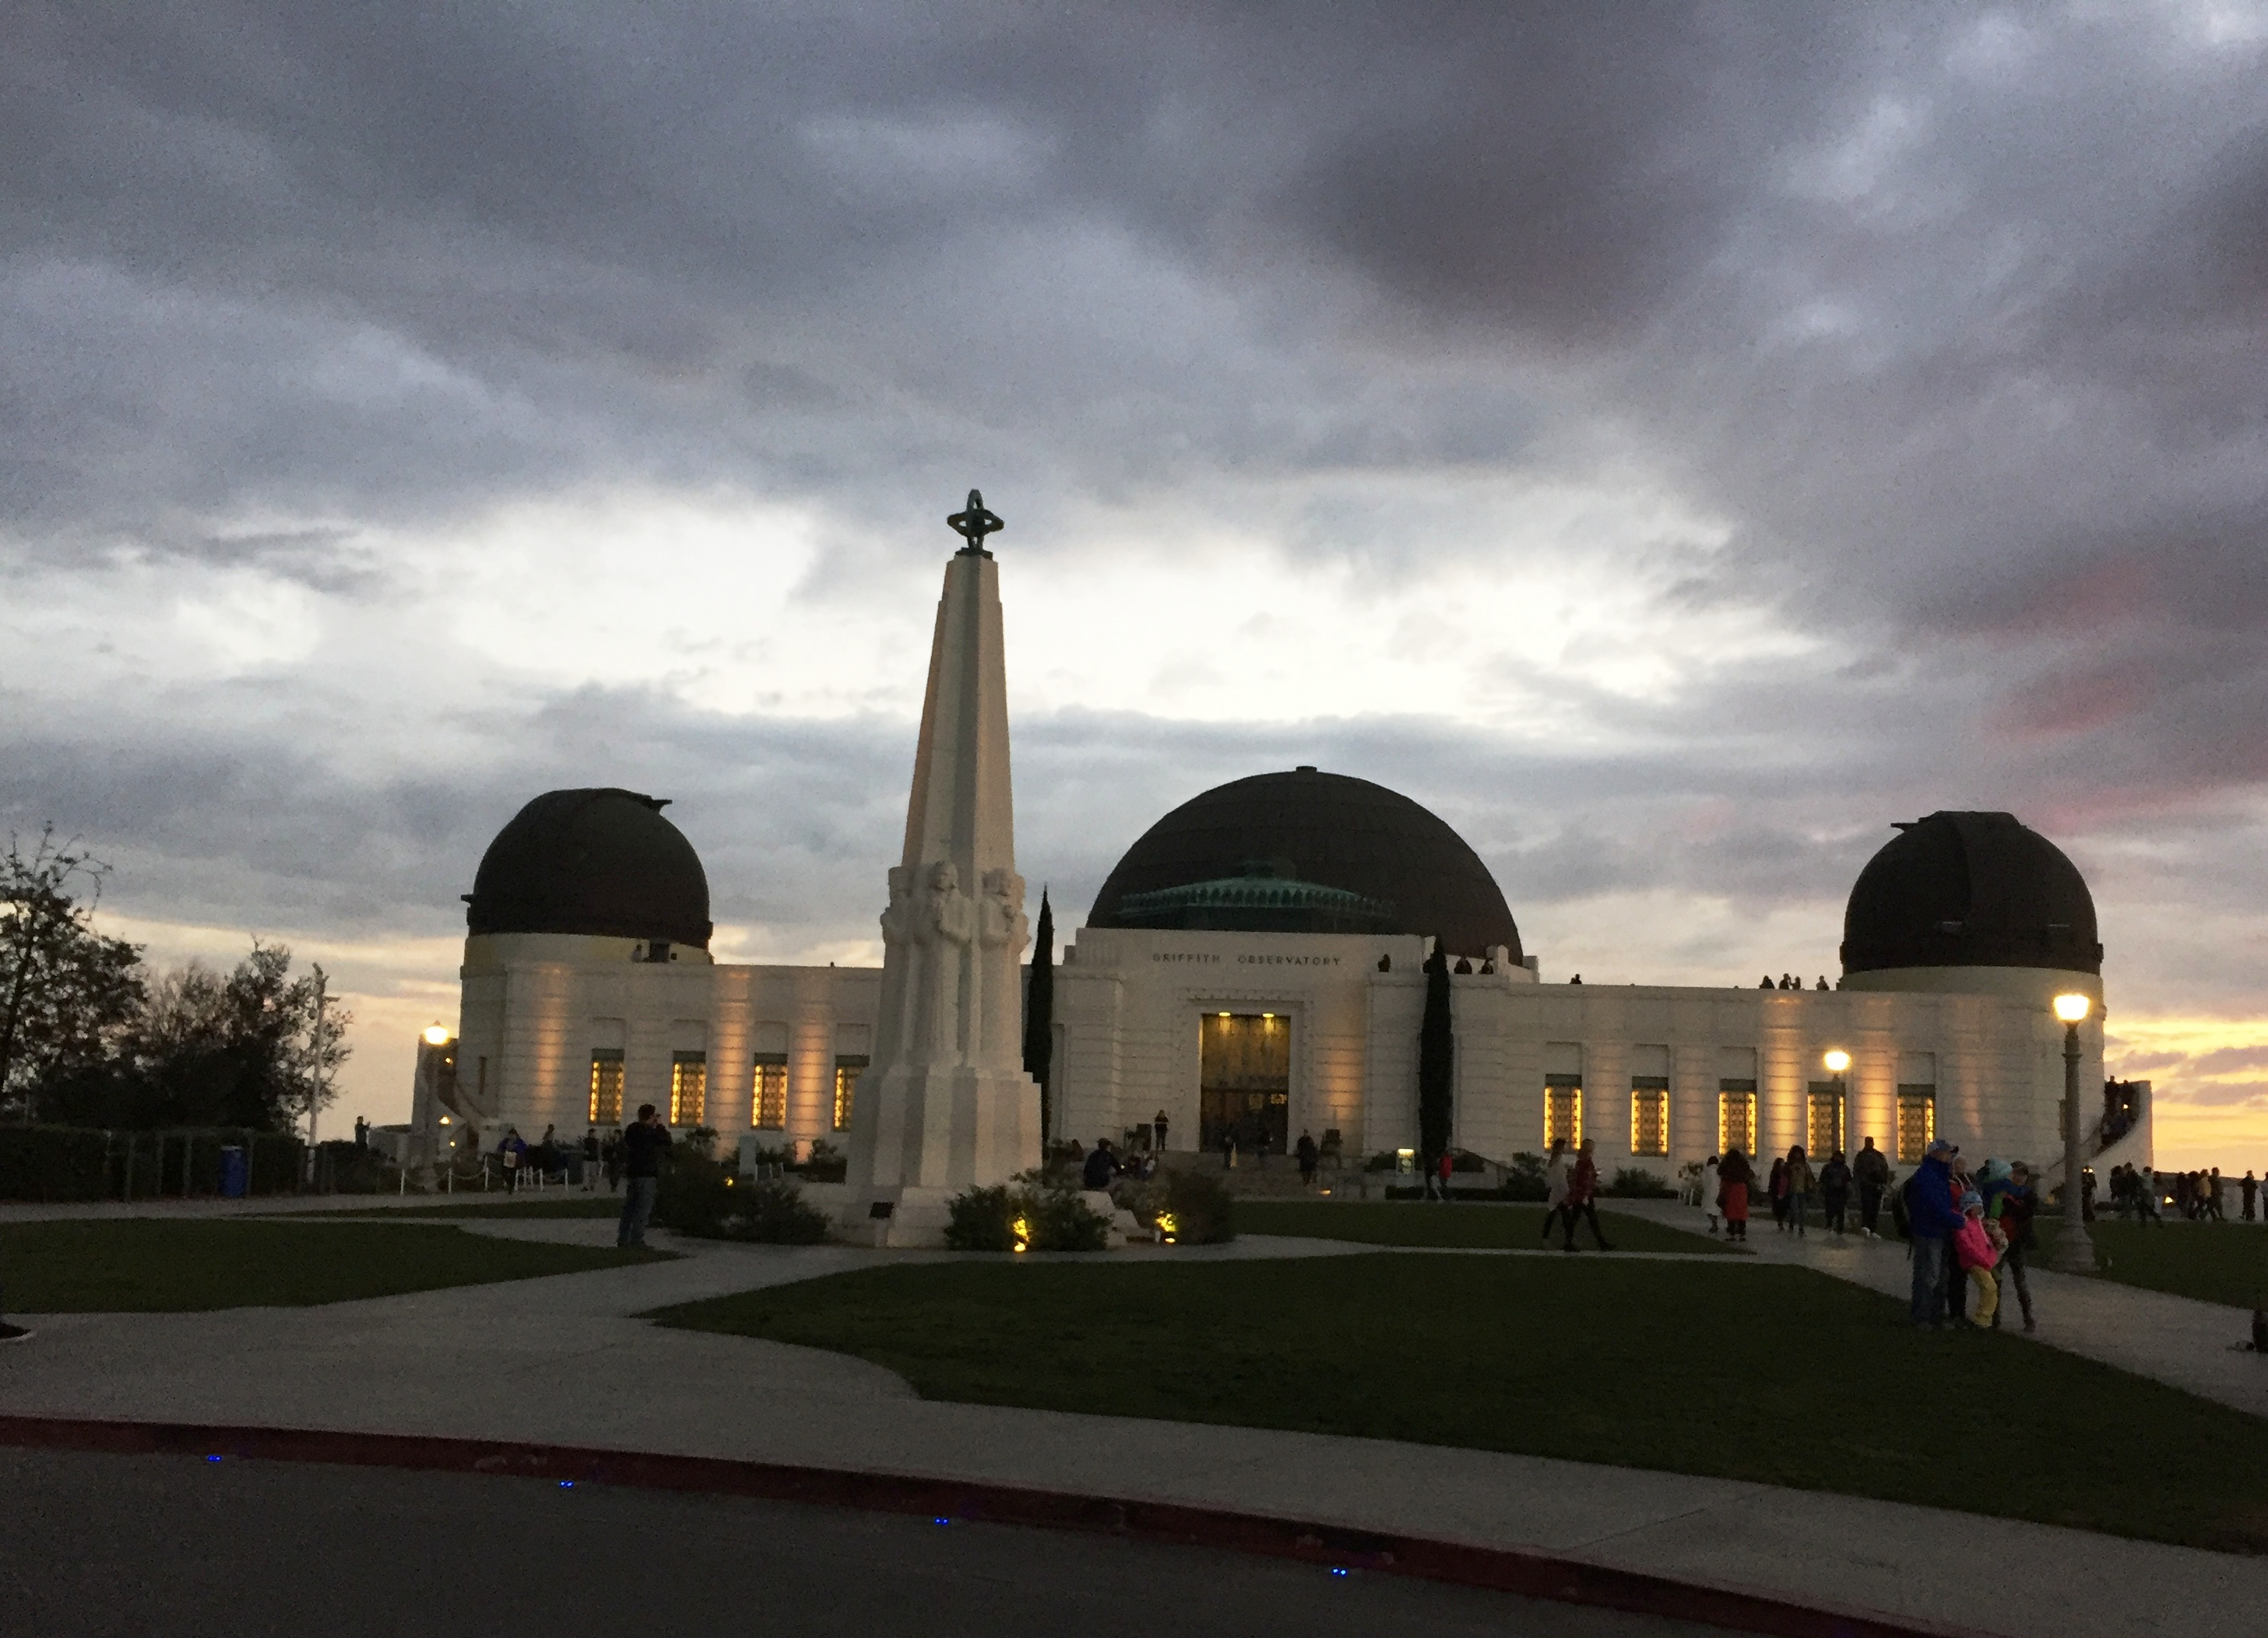 griffith-observatory-8